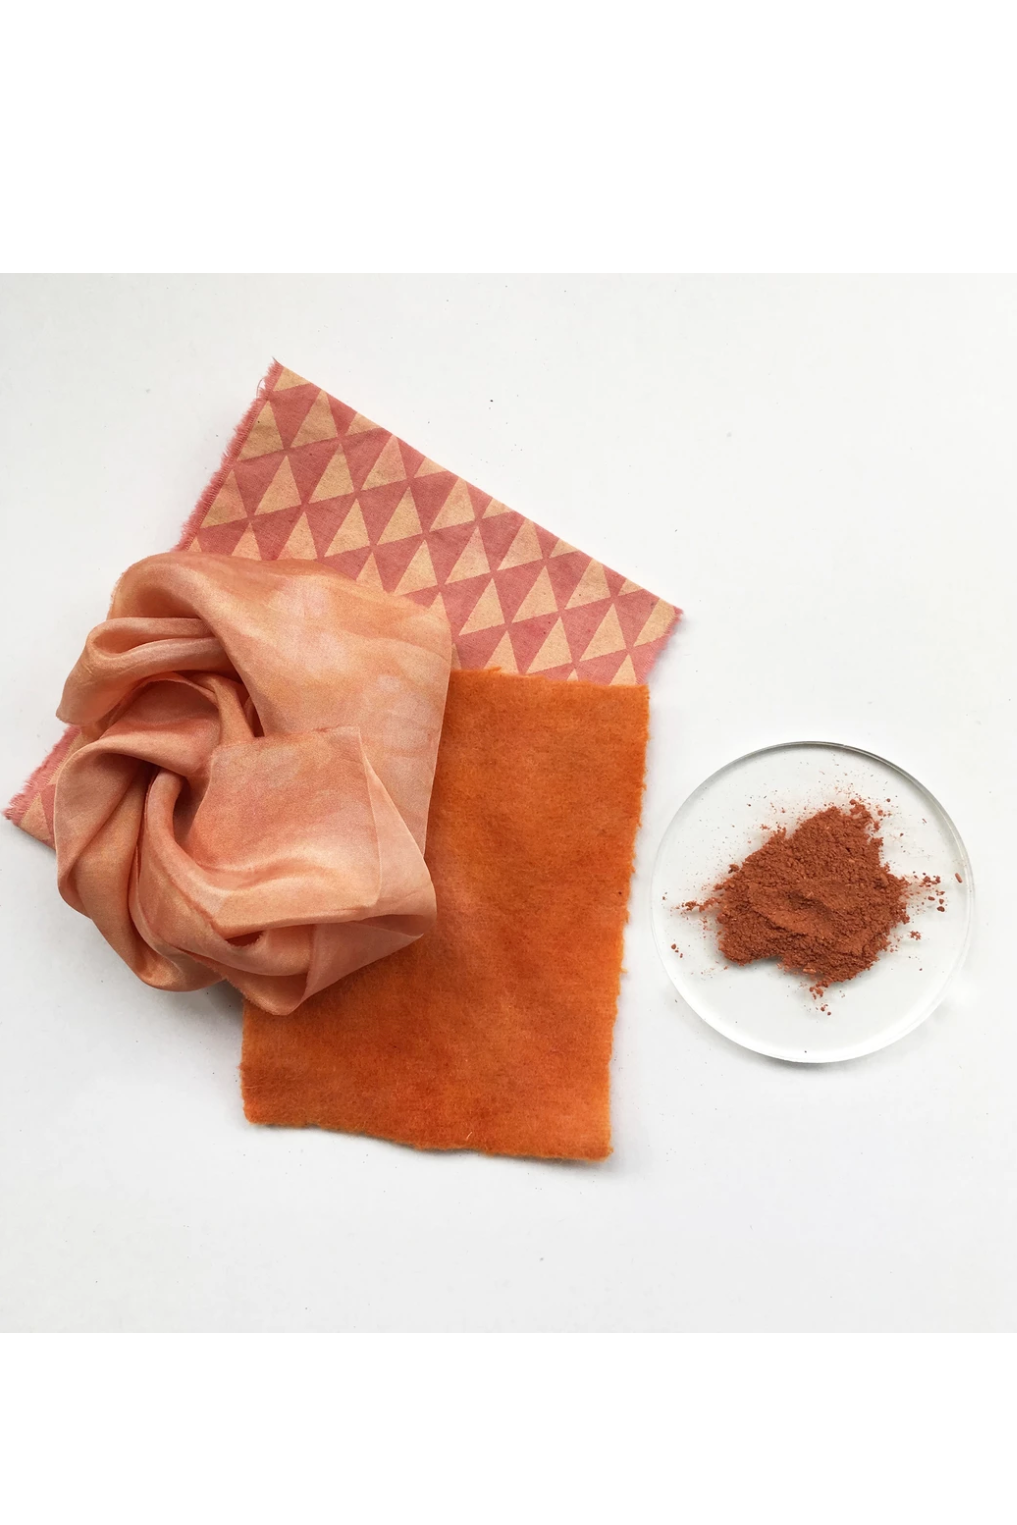 DIY - Natural Dye Kit